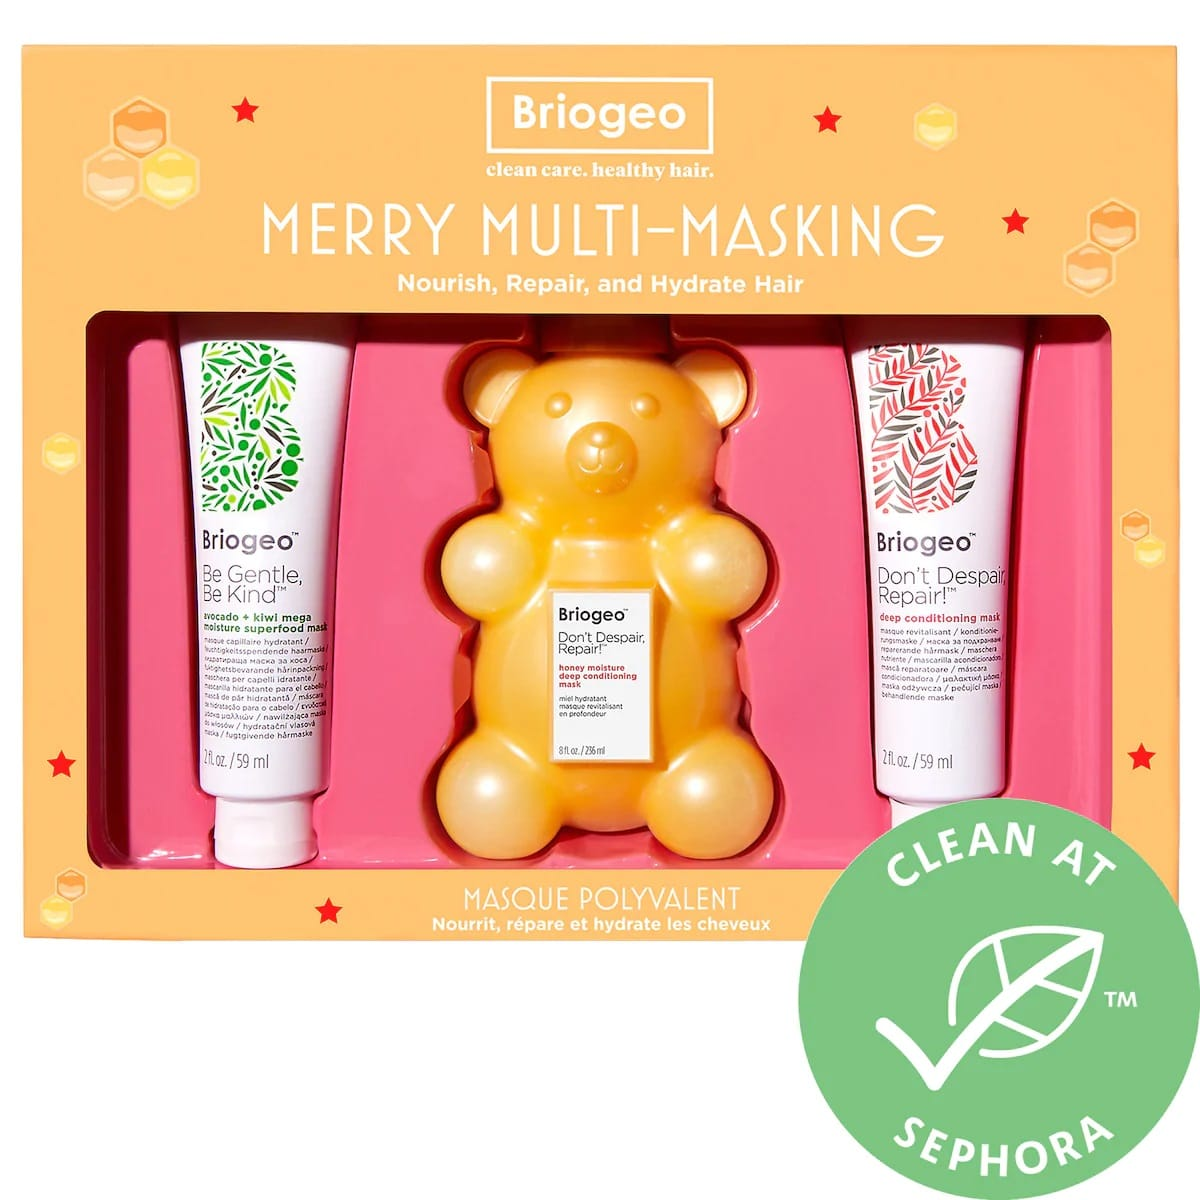 Merry Multi-Masking Kit - Sephora - WorkwearToronto.com - Christmas Gift Ideas for her